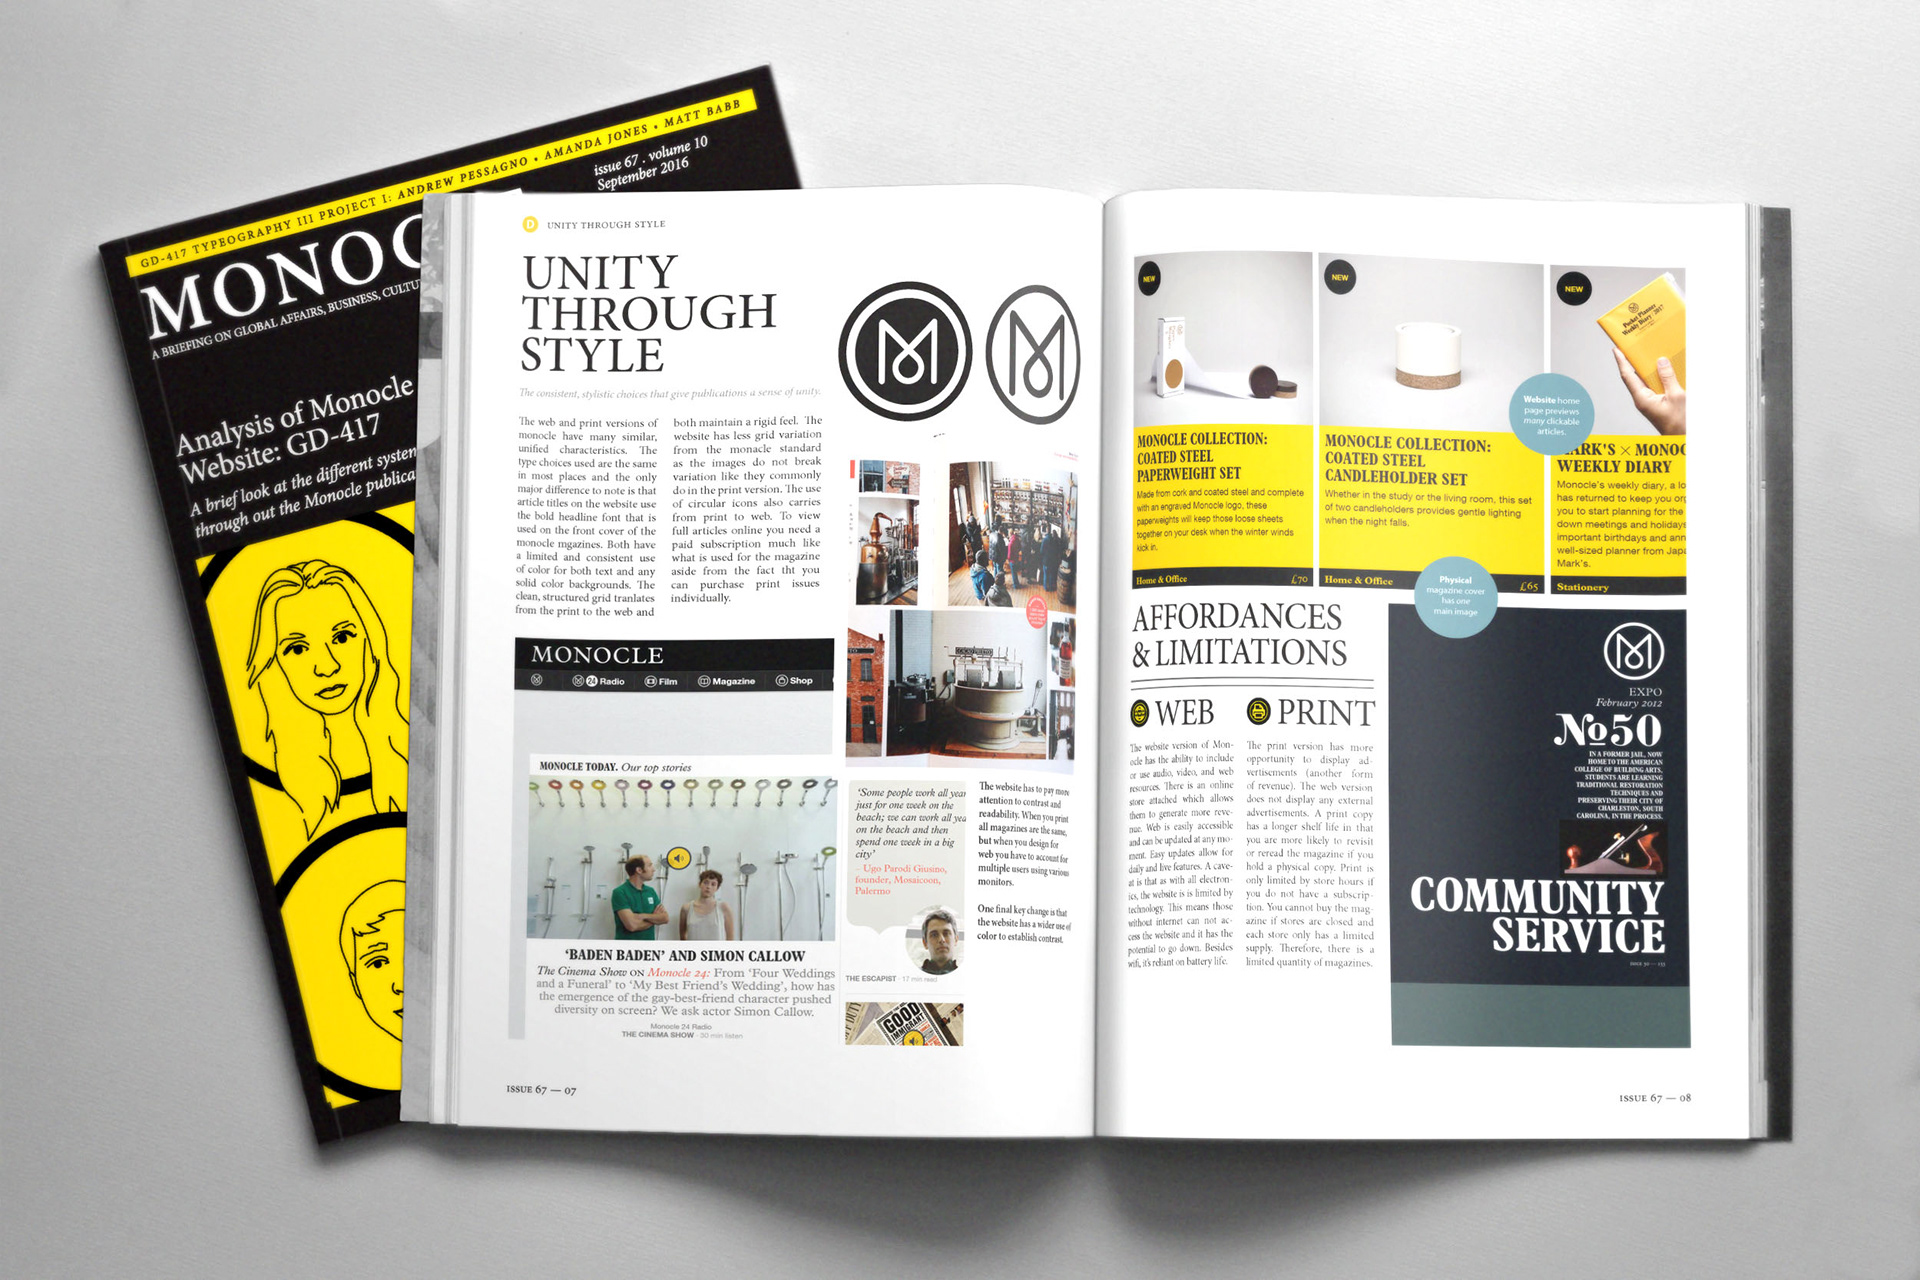 Matt Babb - Monocle Magazine Analysis